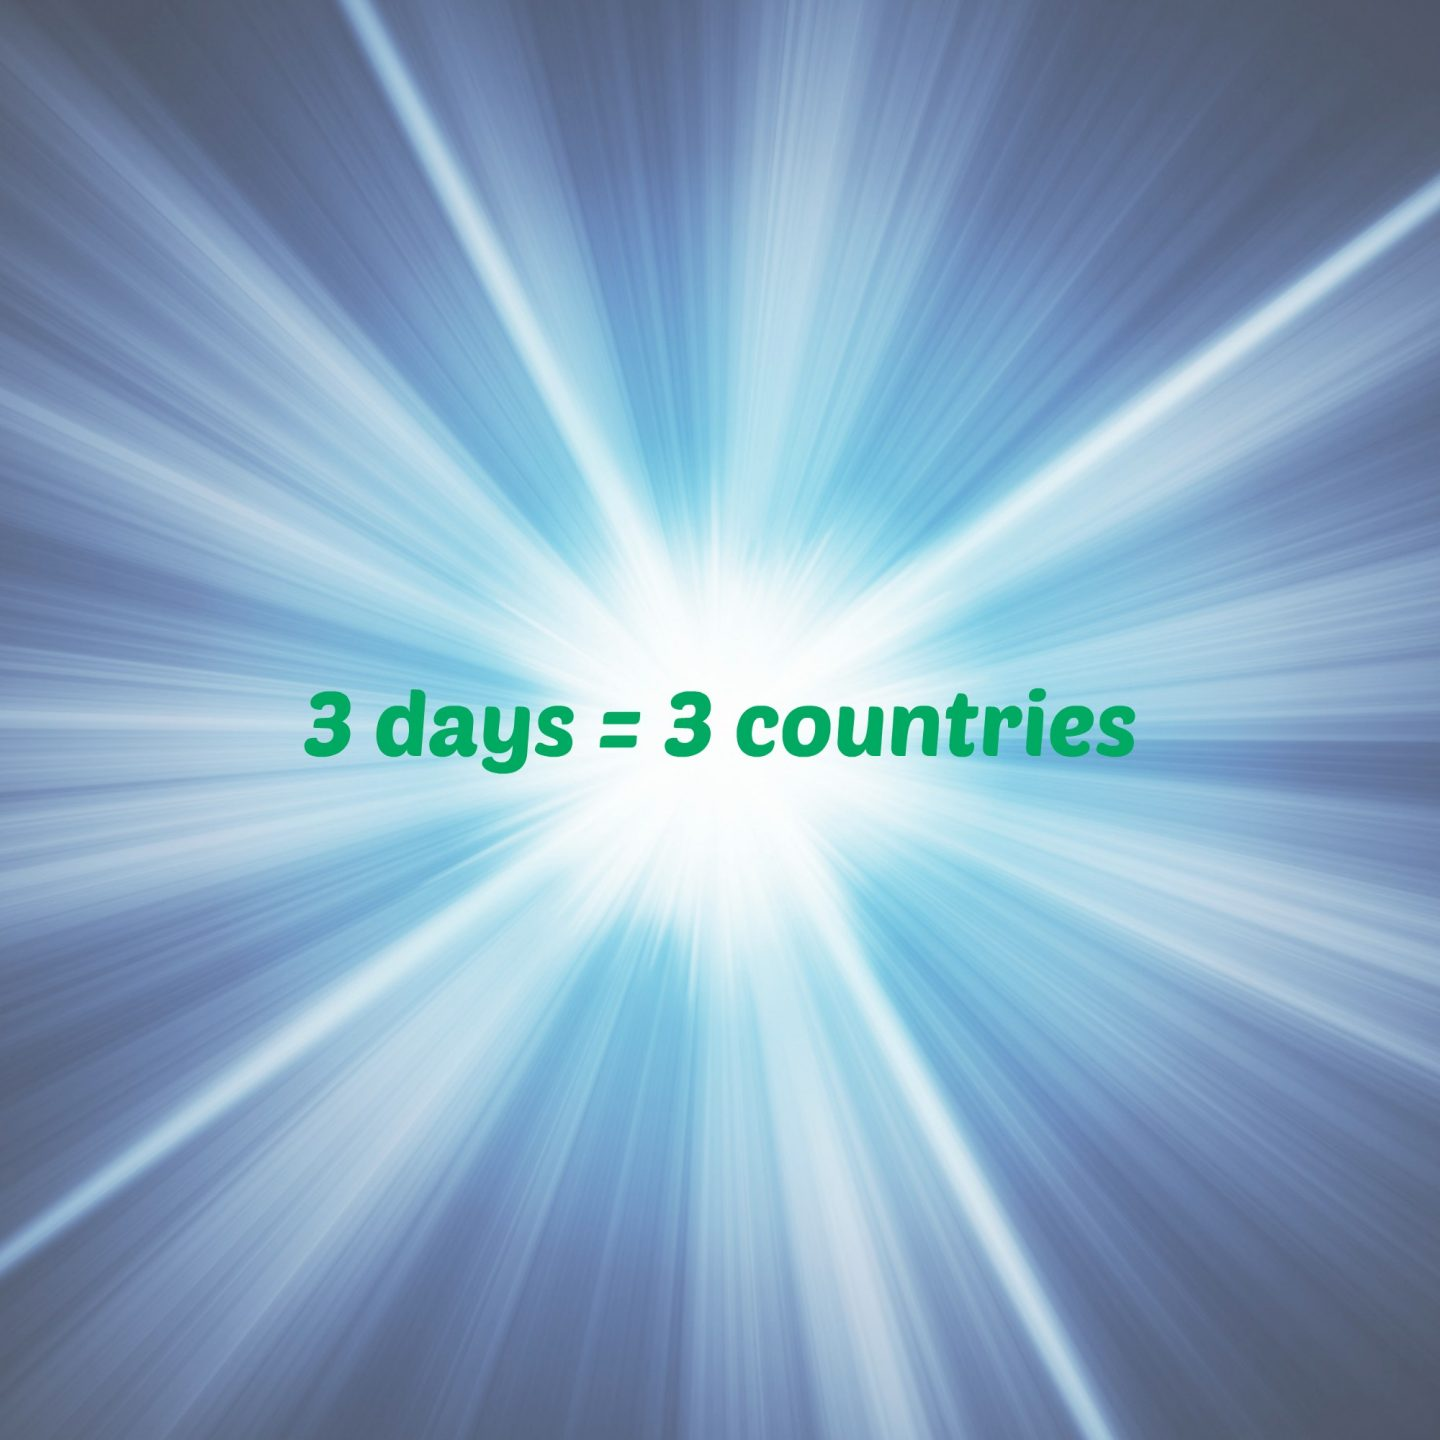 3 days = 3 countries